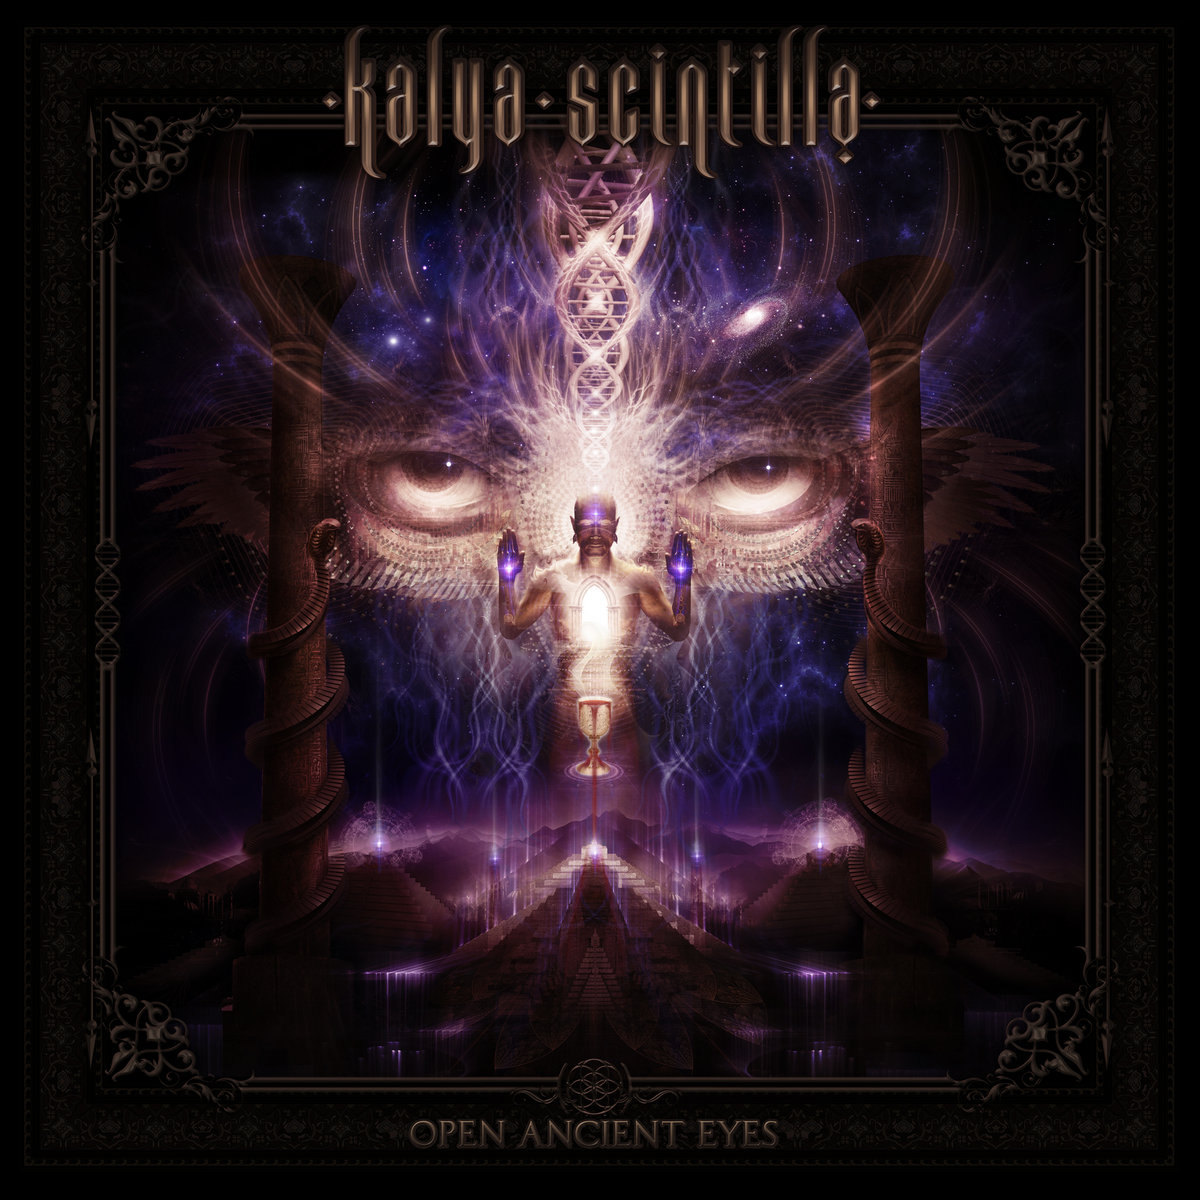 Kalya Scintilla & Eve Olution - The Epilogue @ 'Open Ancient Eyes' album (432hz, electronic)